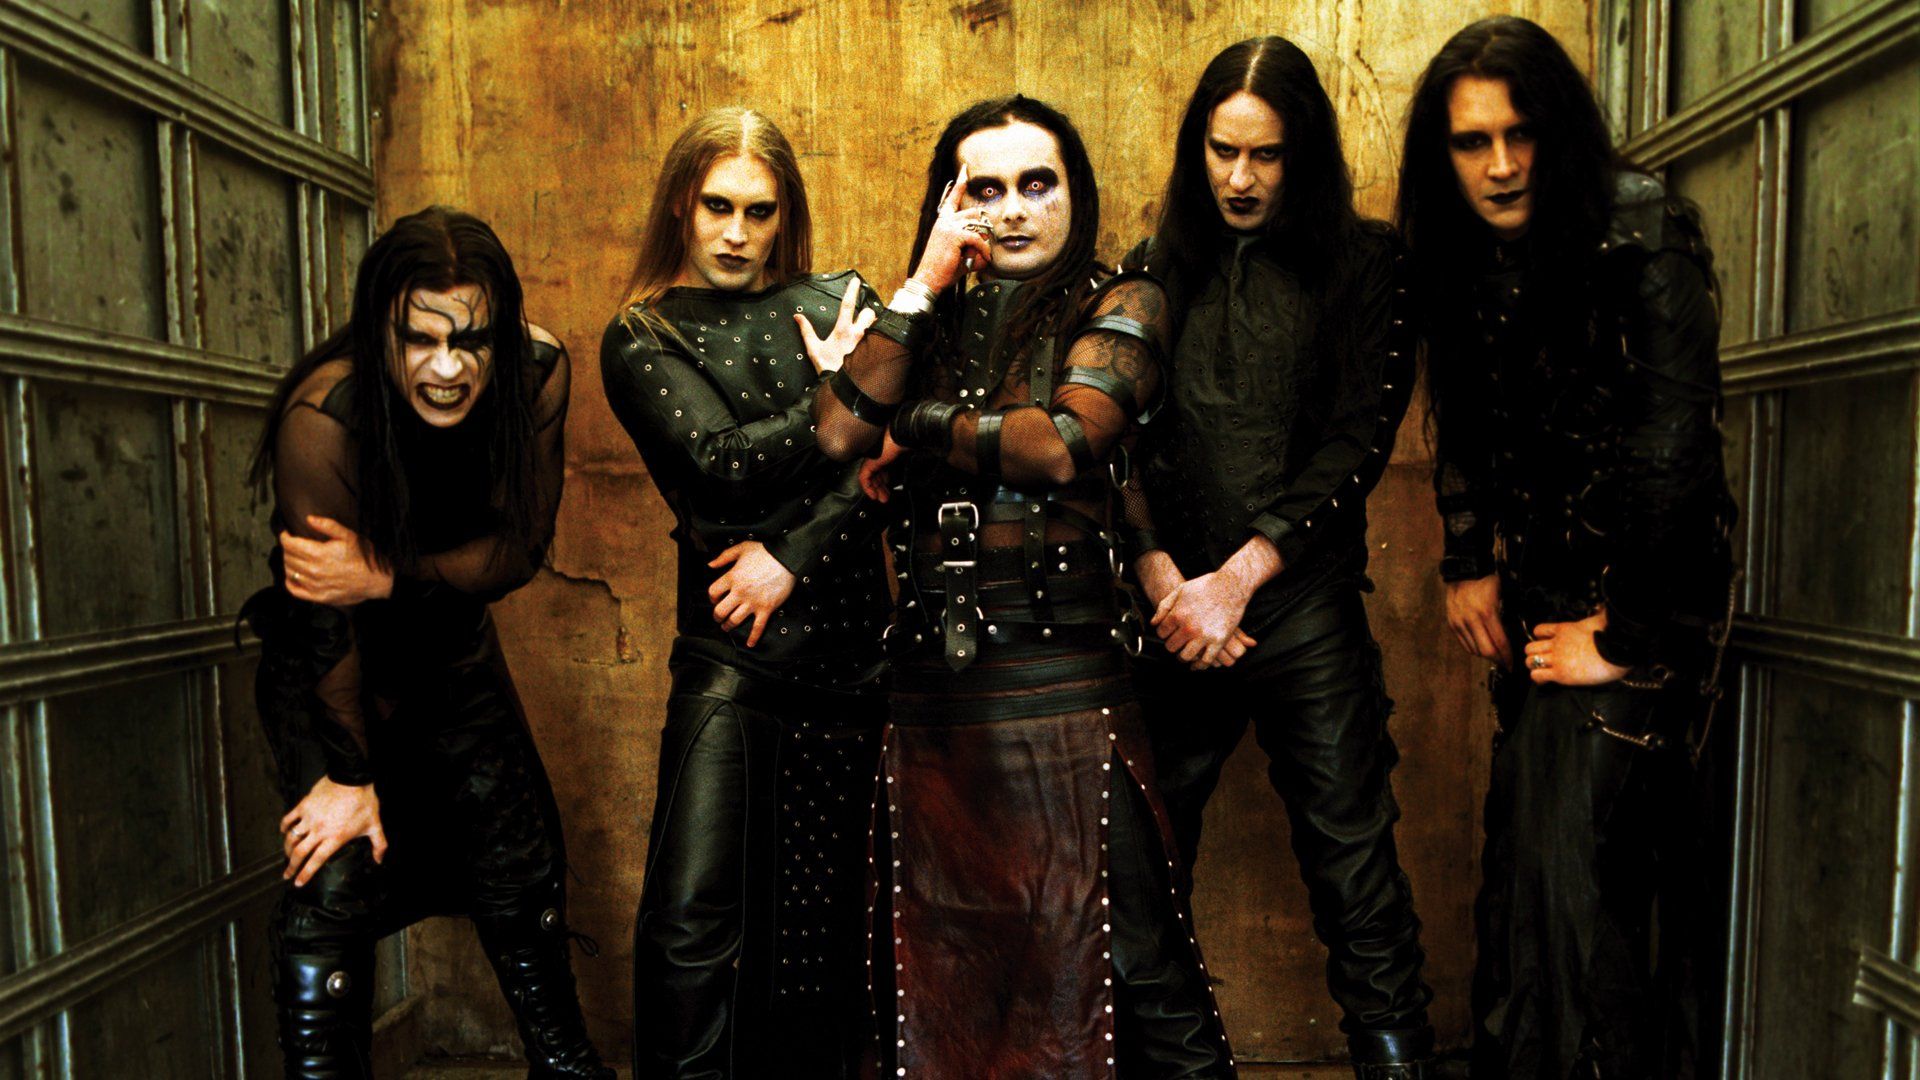 cradle of filth wallpaper  Cradle of Filth HD Wallpaper | Background Image | 1920x1080 | ID ...